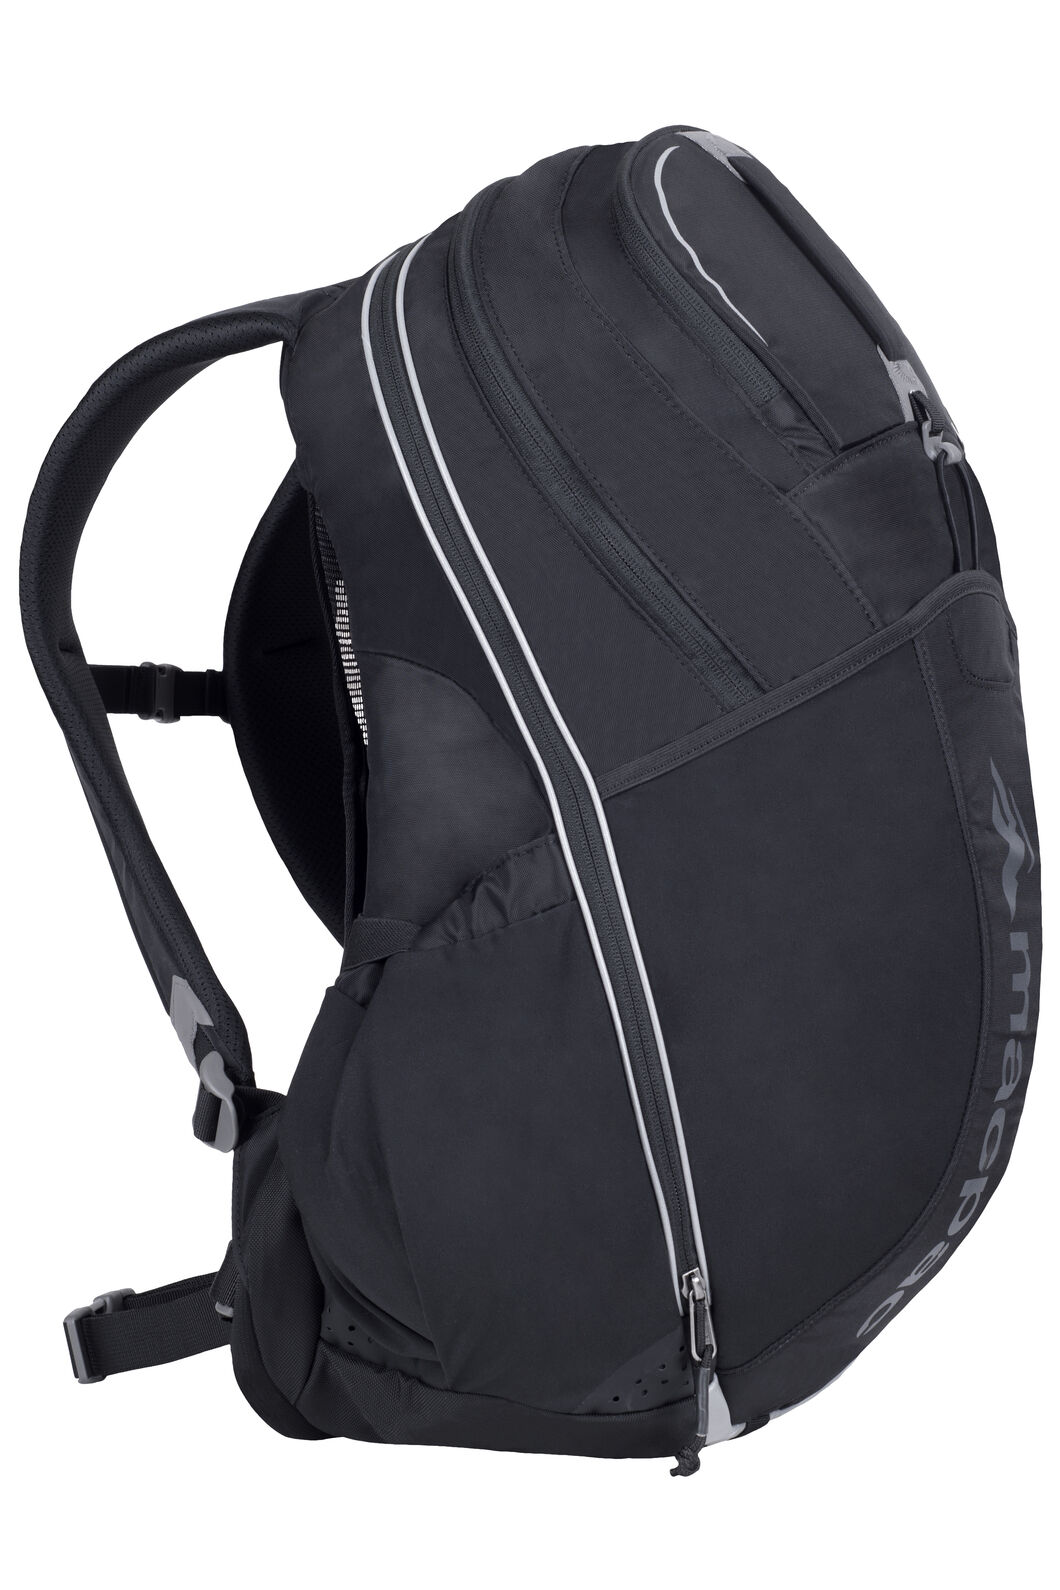 Macpac Rapaki Vented 30 L Day Pack, Black, hi-res